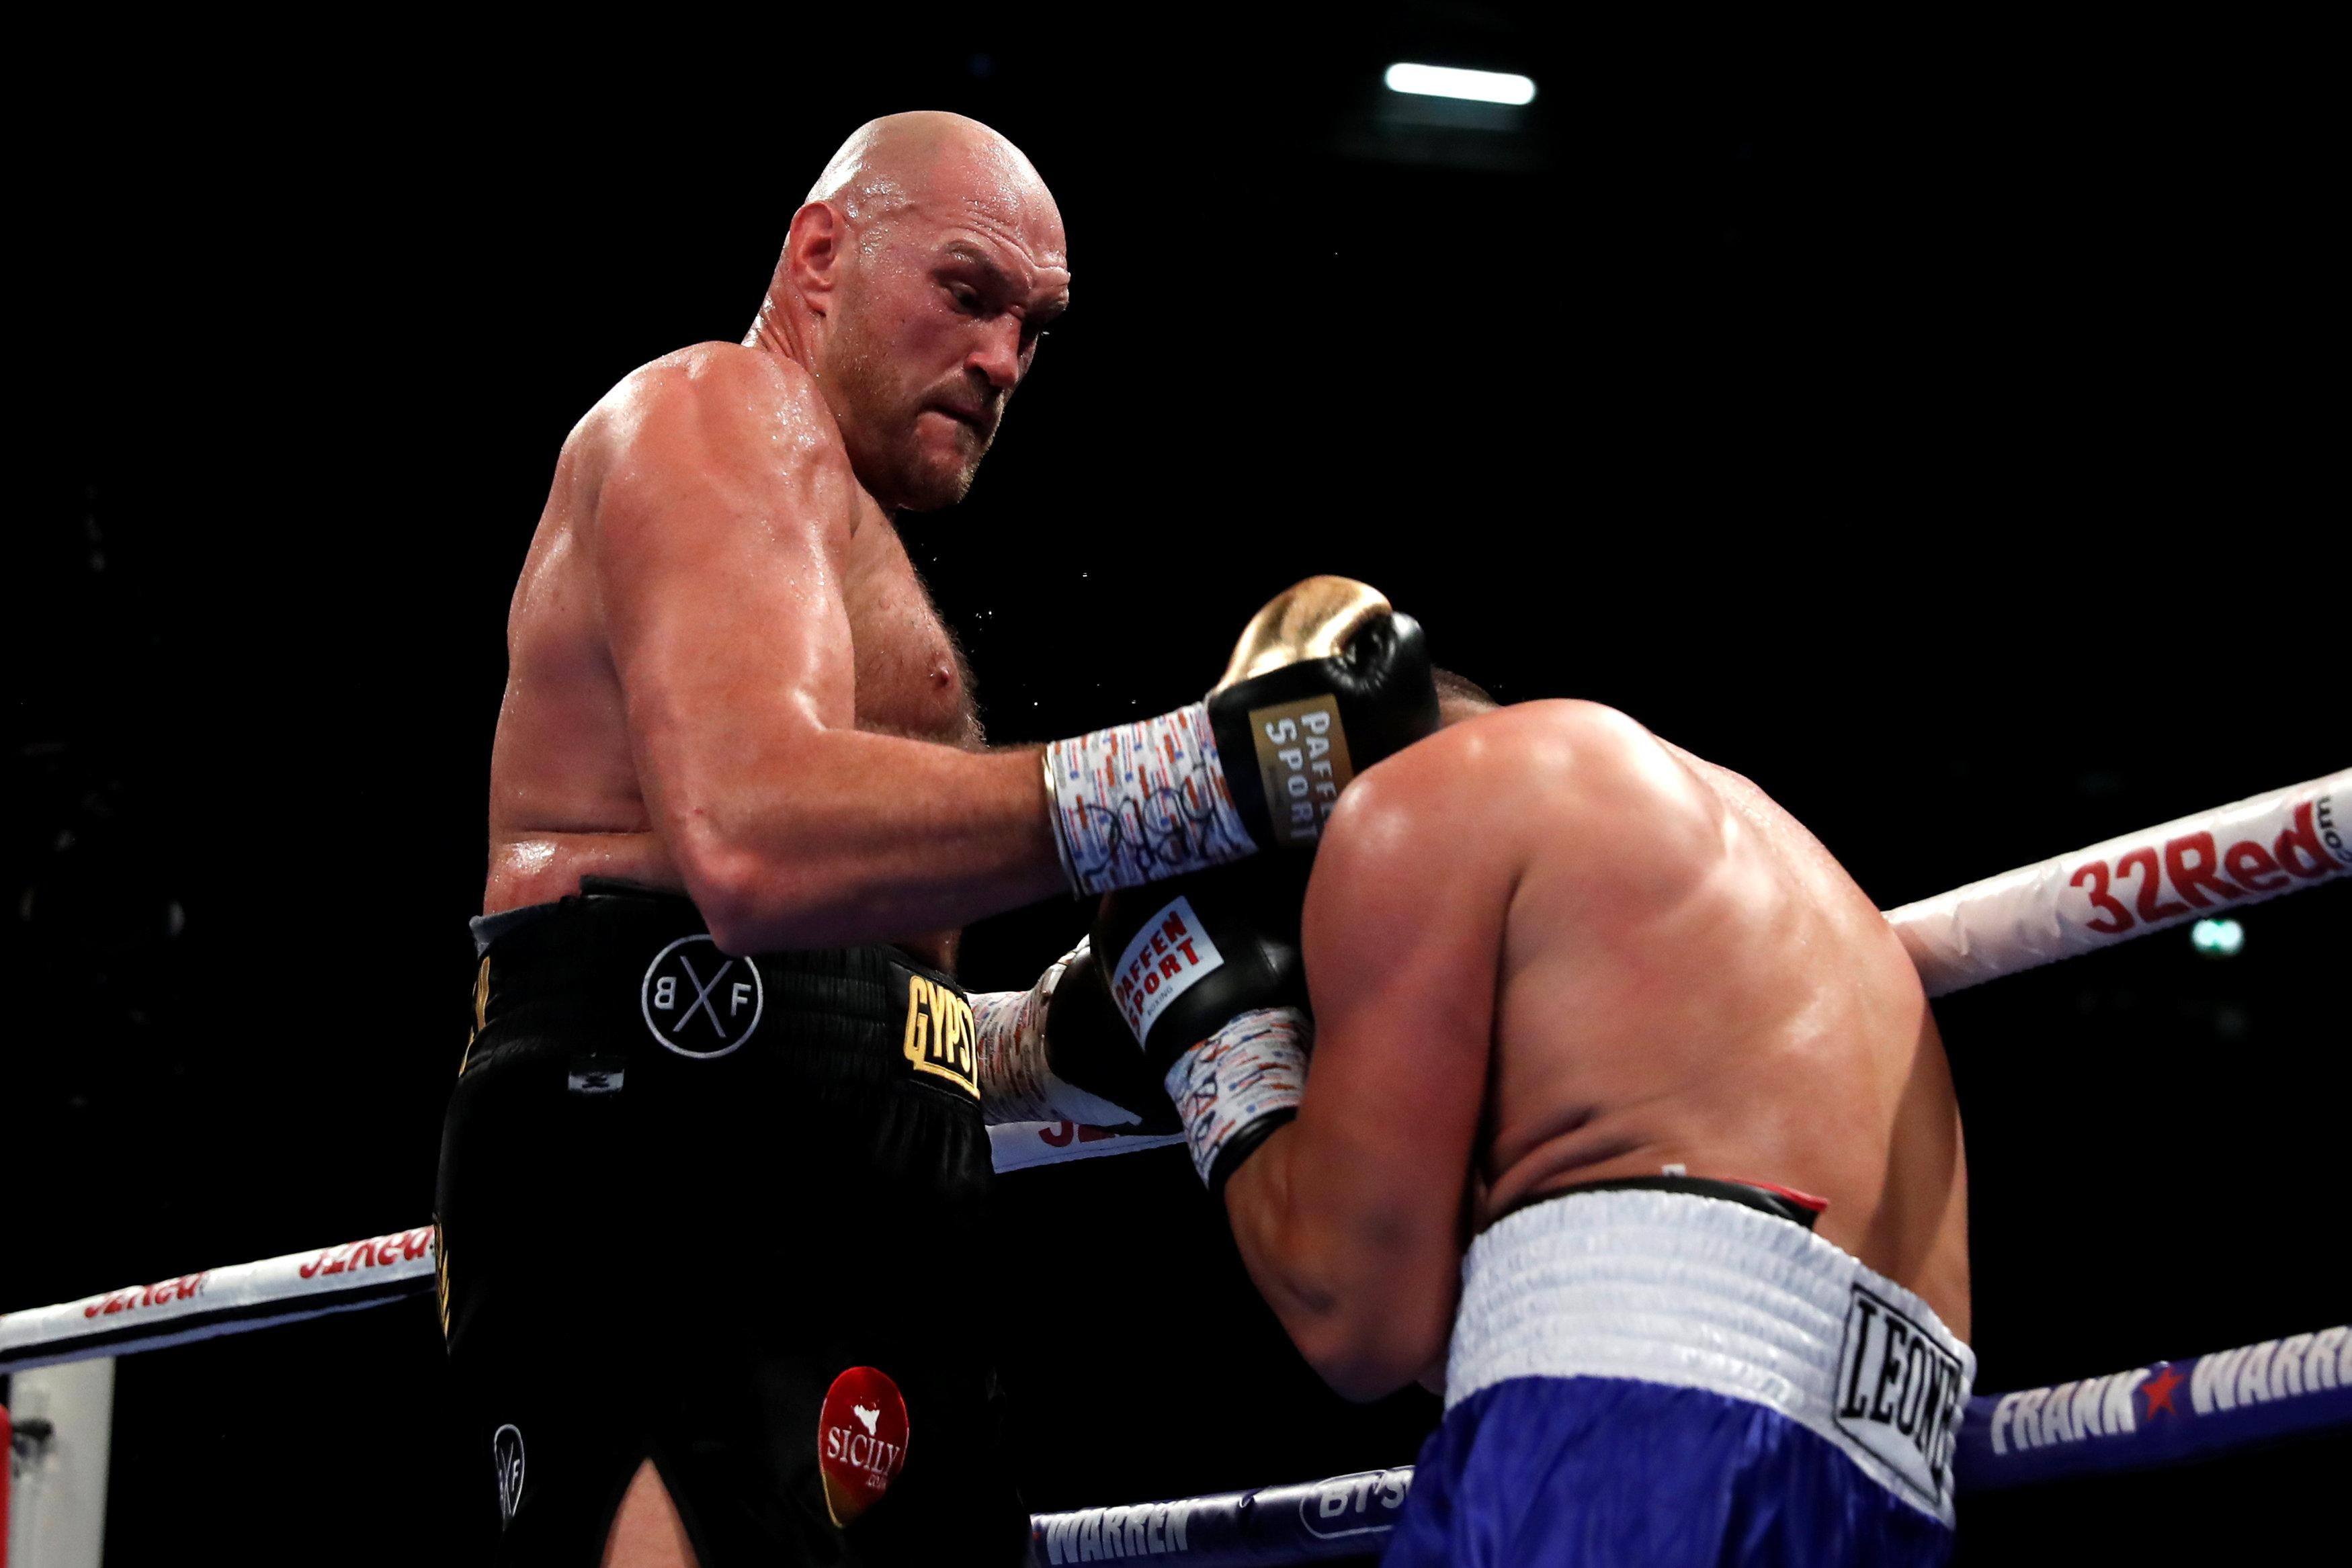 Tyson Fury was fighting for the first time in nearly three years